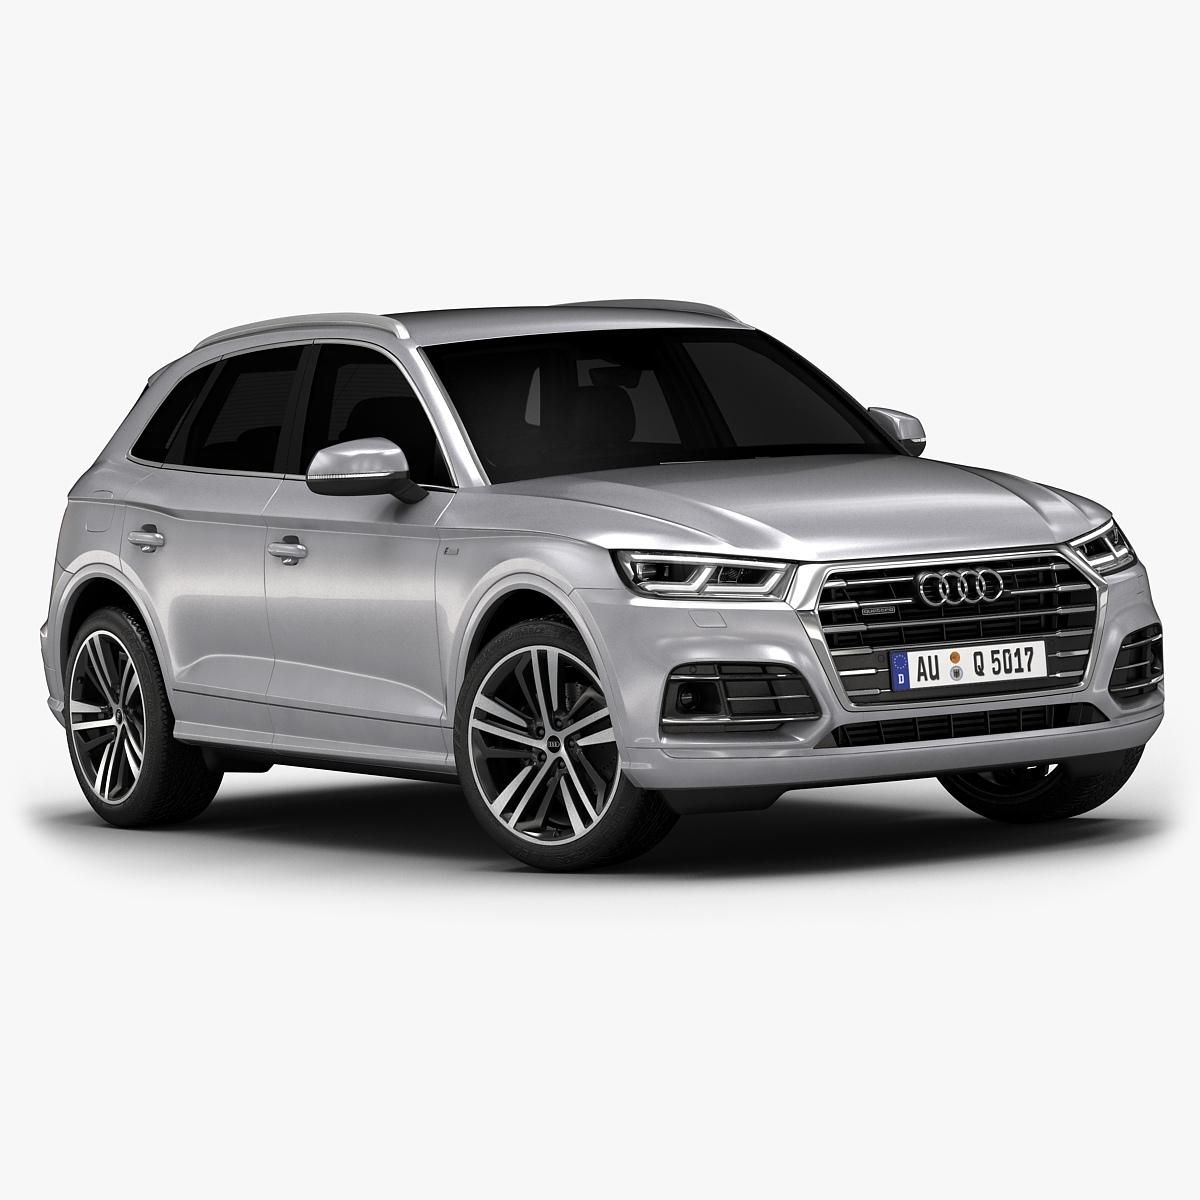 2017 Audi Q5 (Low Interior) 3D Model #AD ,#Audi#Model